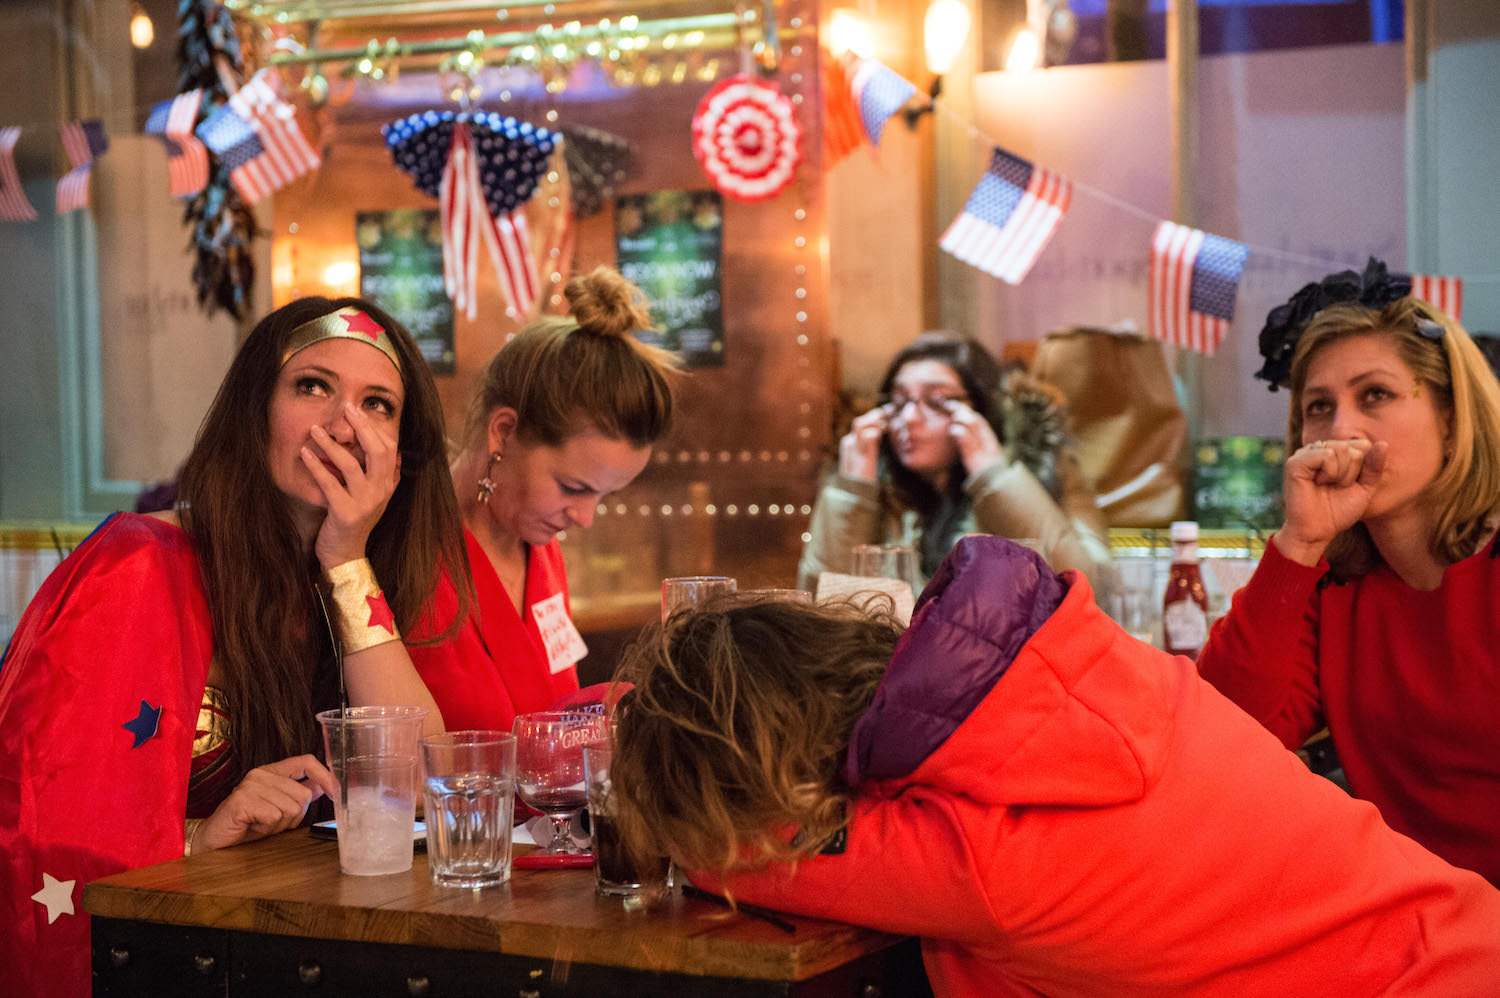 Democrat supporters in London react to the US election results. Image: Chris J Ratcliffe/Getty Images